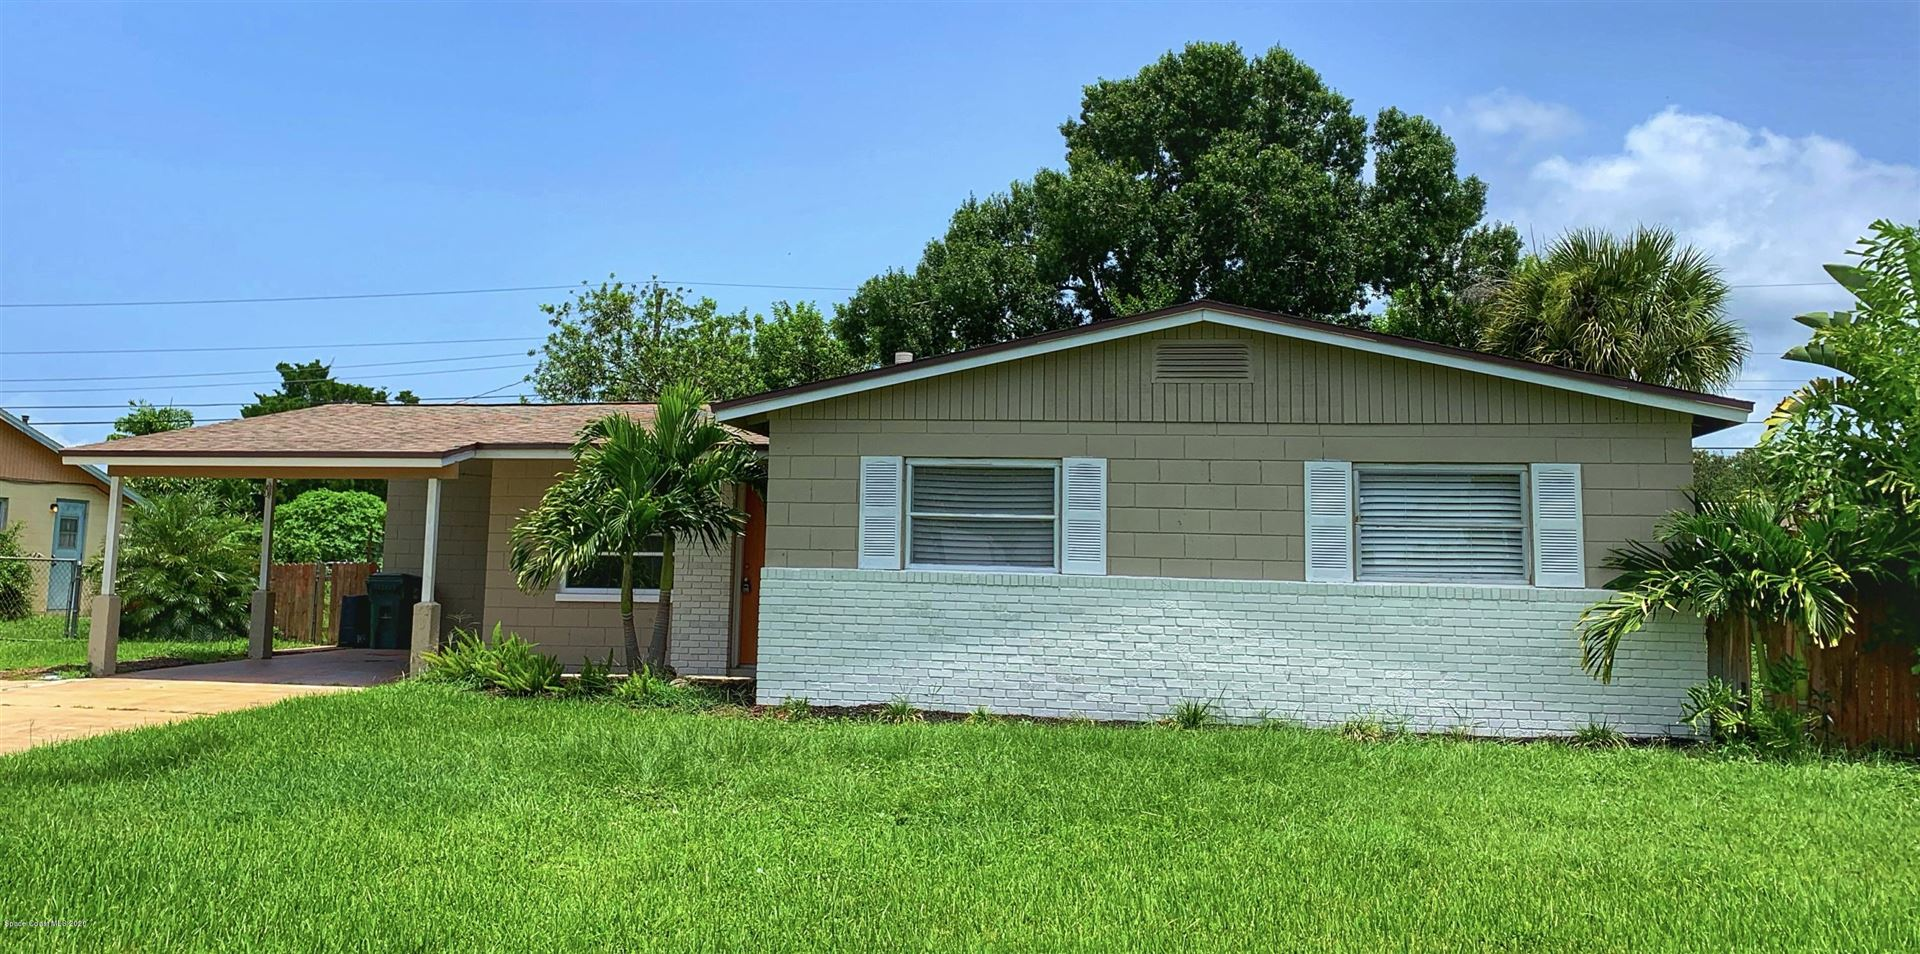 982 Miracle Way, Rockledge, FL 32955 - #: 878915